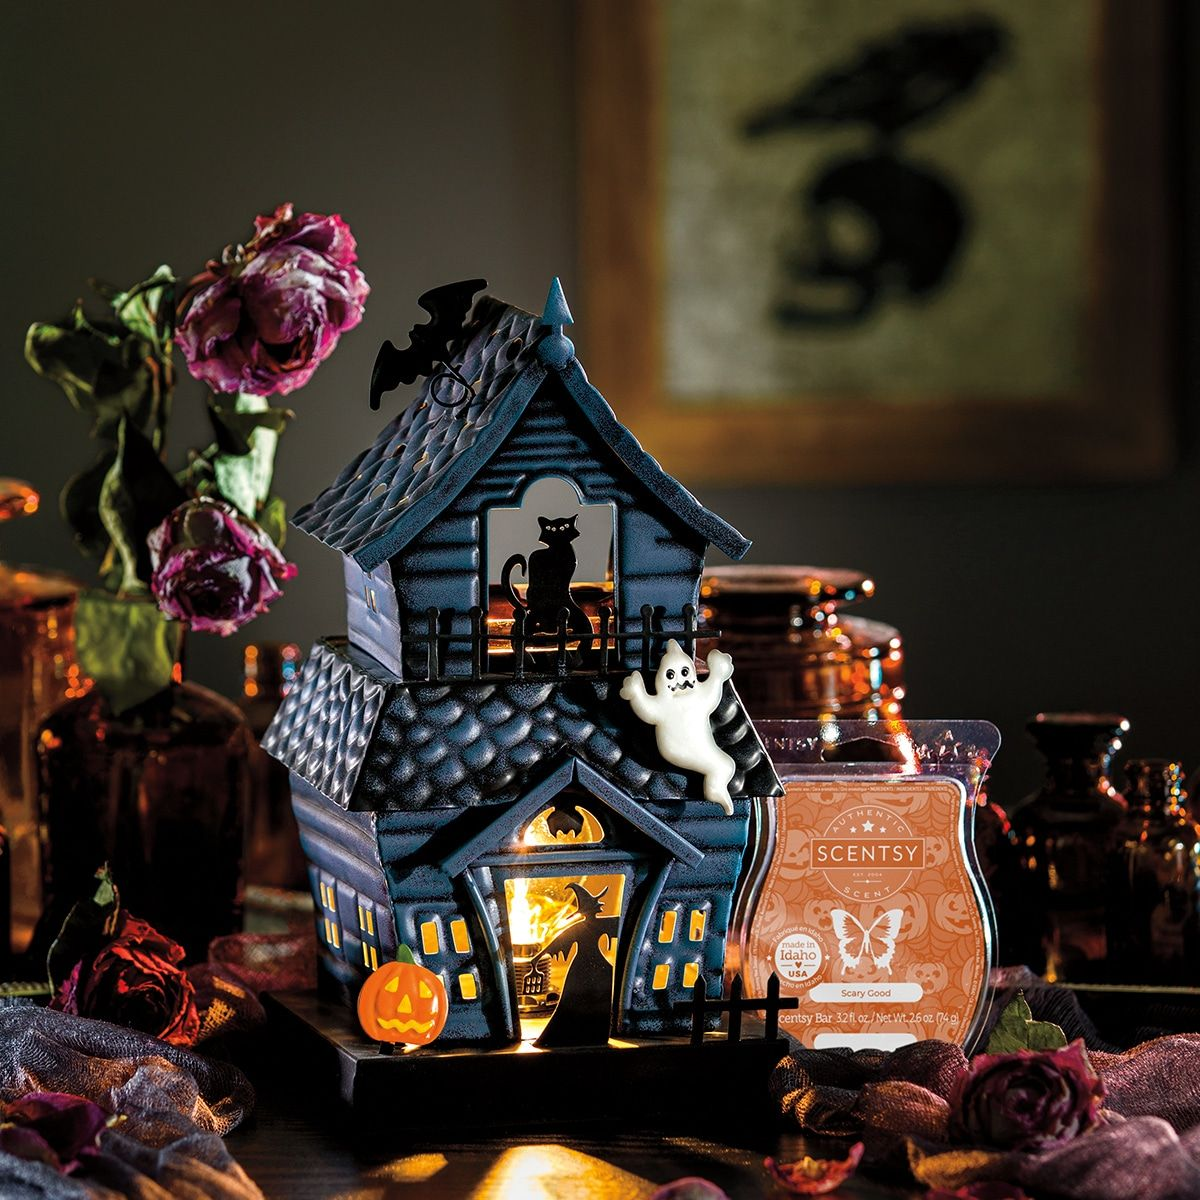 Haunting Good Time Scentsy Warmer